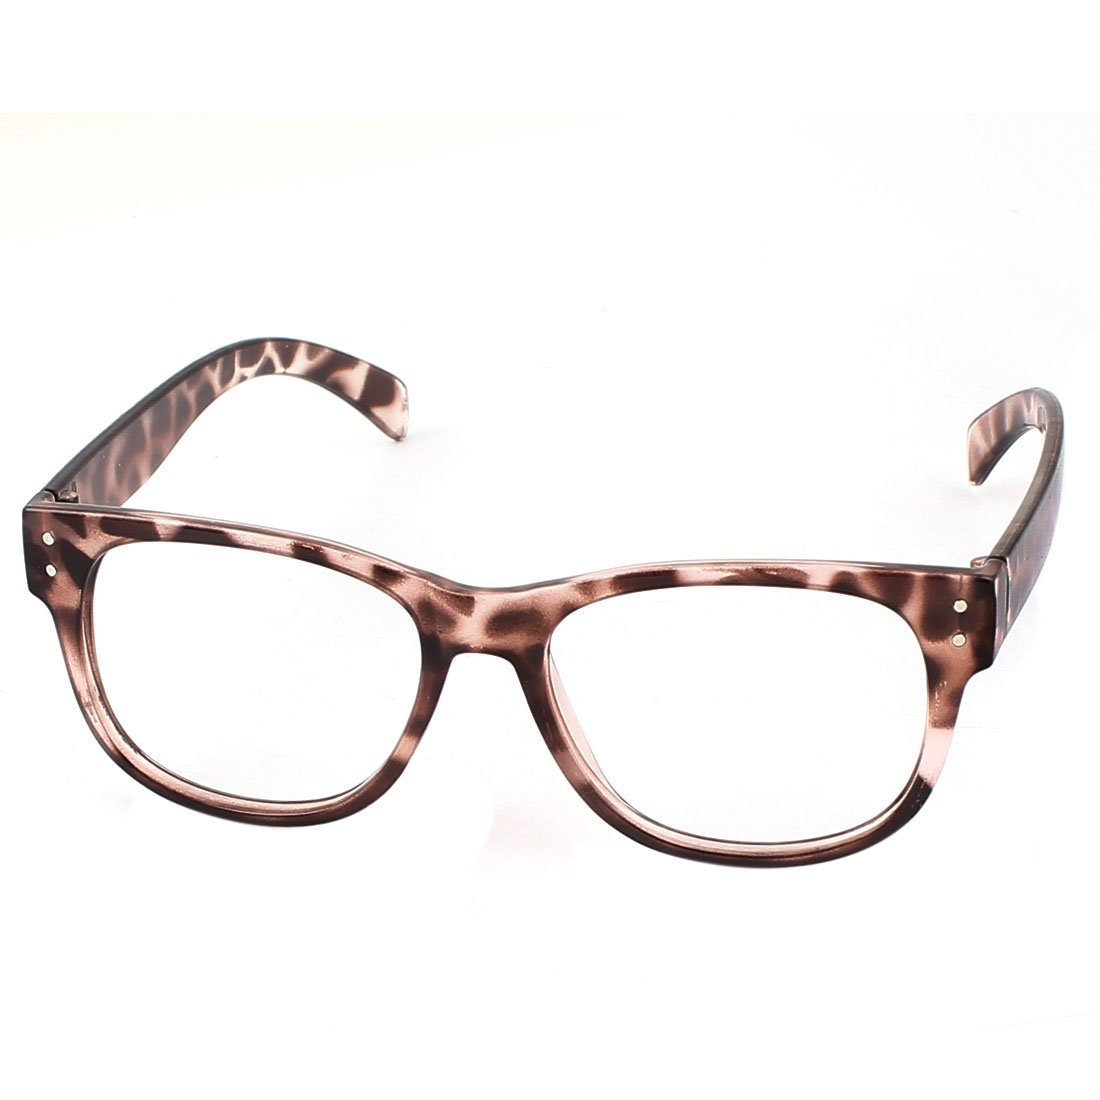 Full Rim Leopard Pattern Slim Temple Lensless Glasses Eyeglasses Frame